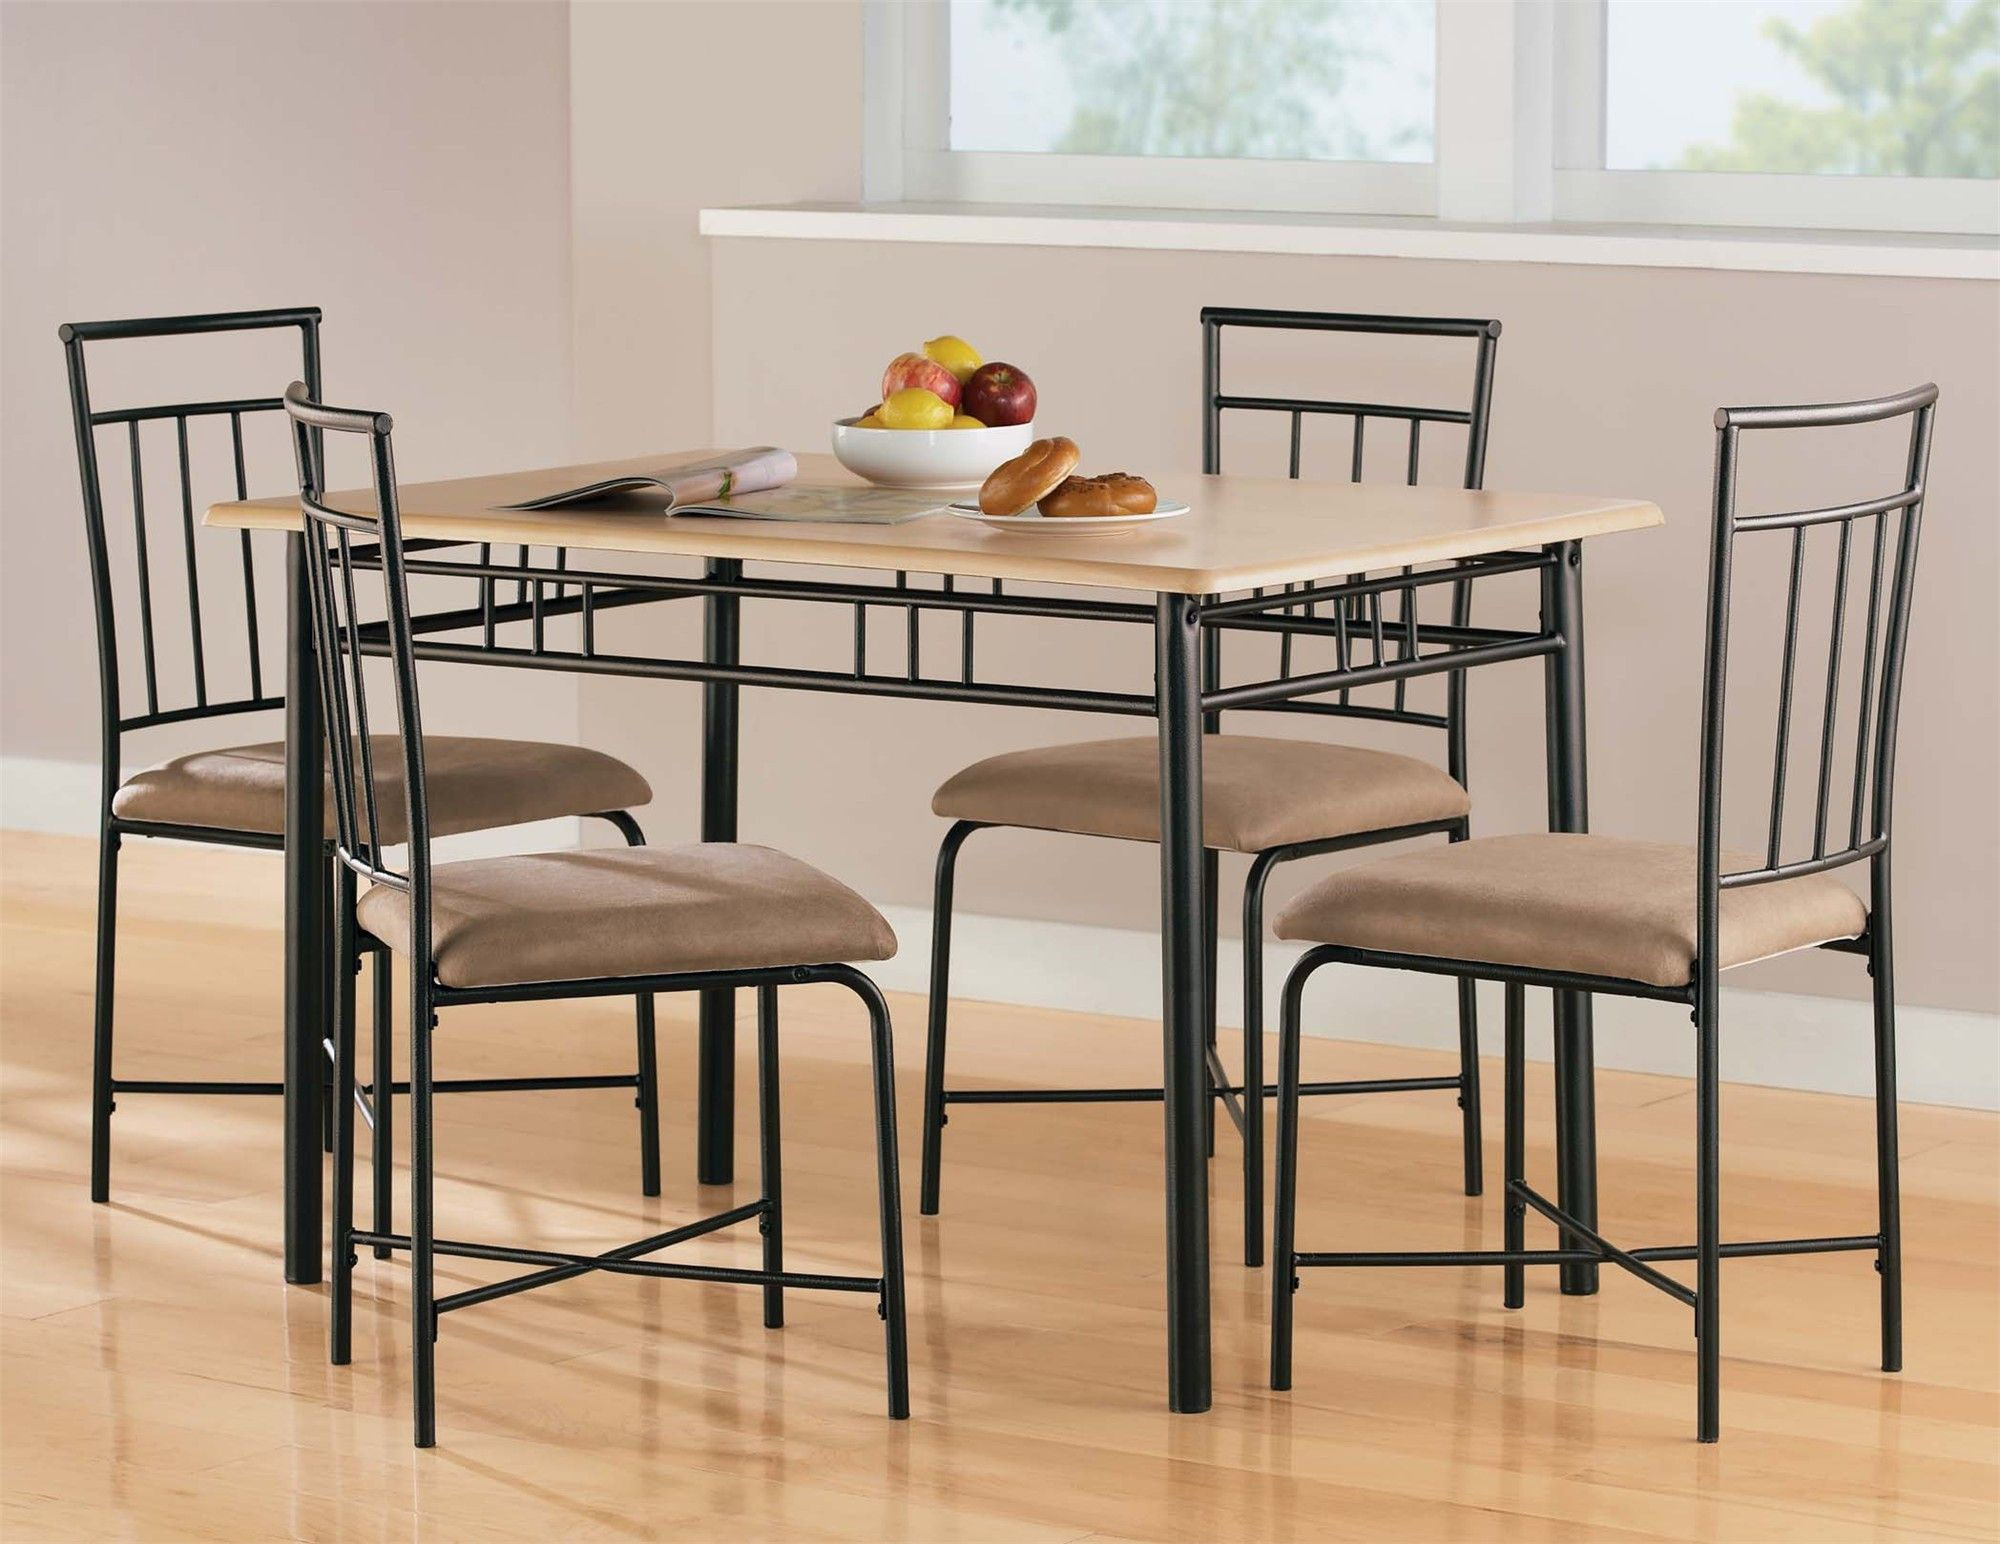 5 Piece Dining Set Wood Metal 4 Chairs Table Kitchen Breakfast Furniture NEW